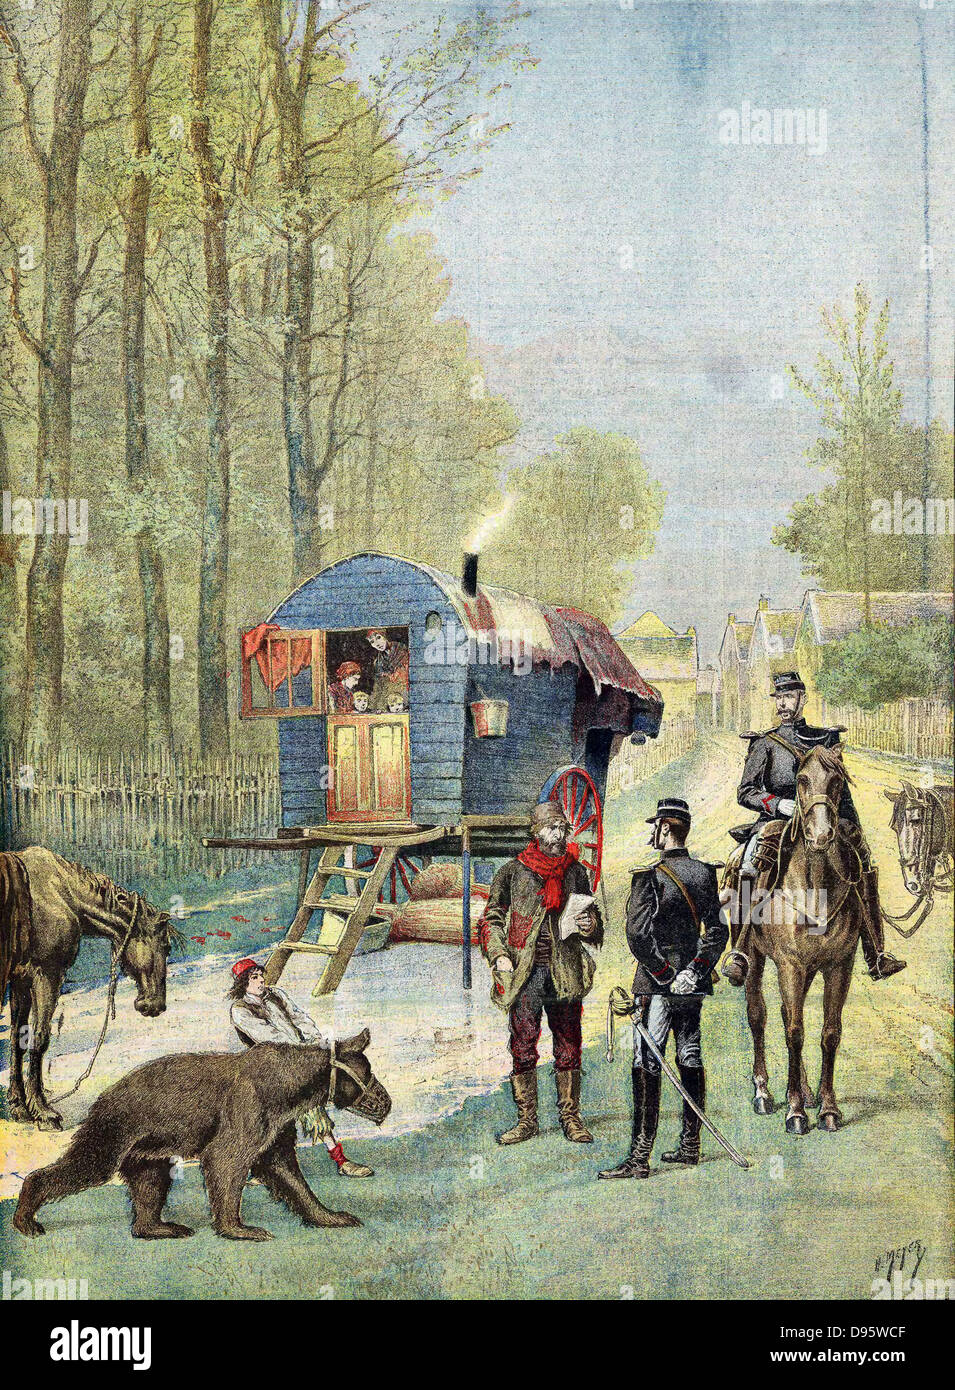 Gendarmes taking census forms to encampment of itinerant gipsies in their caravan. Boy in foreground leads muzzled - Stock Image